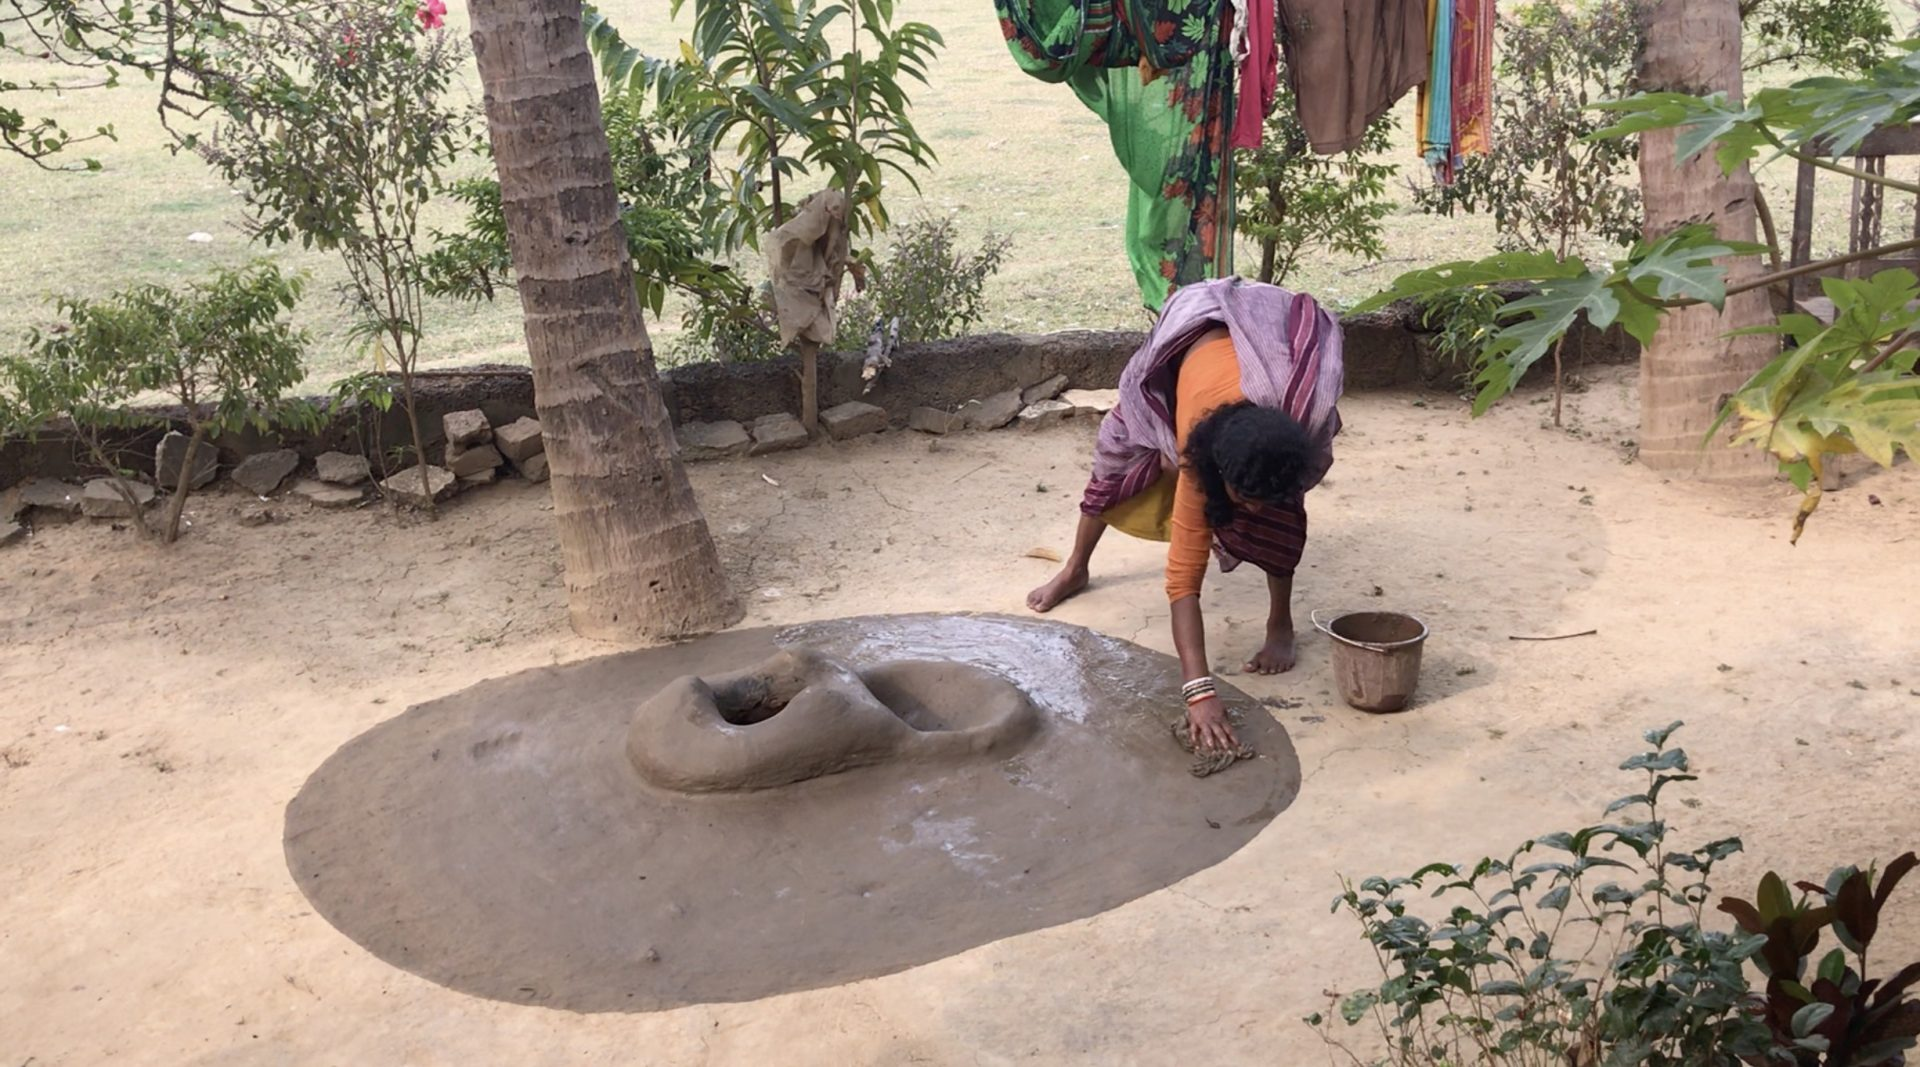 Indian woman washing the stove